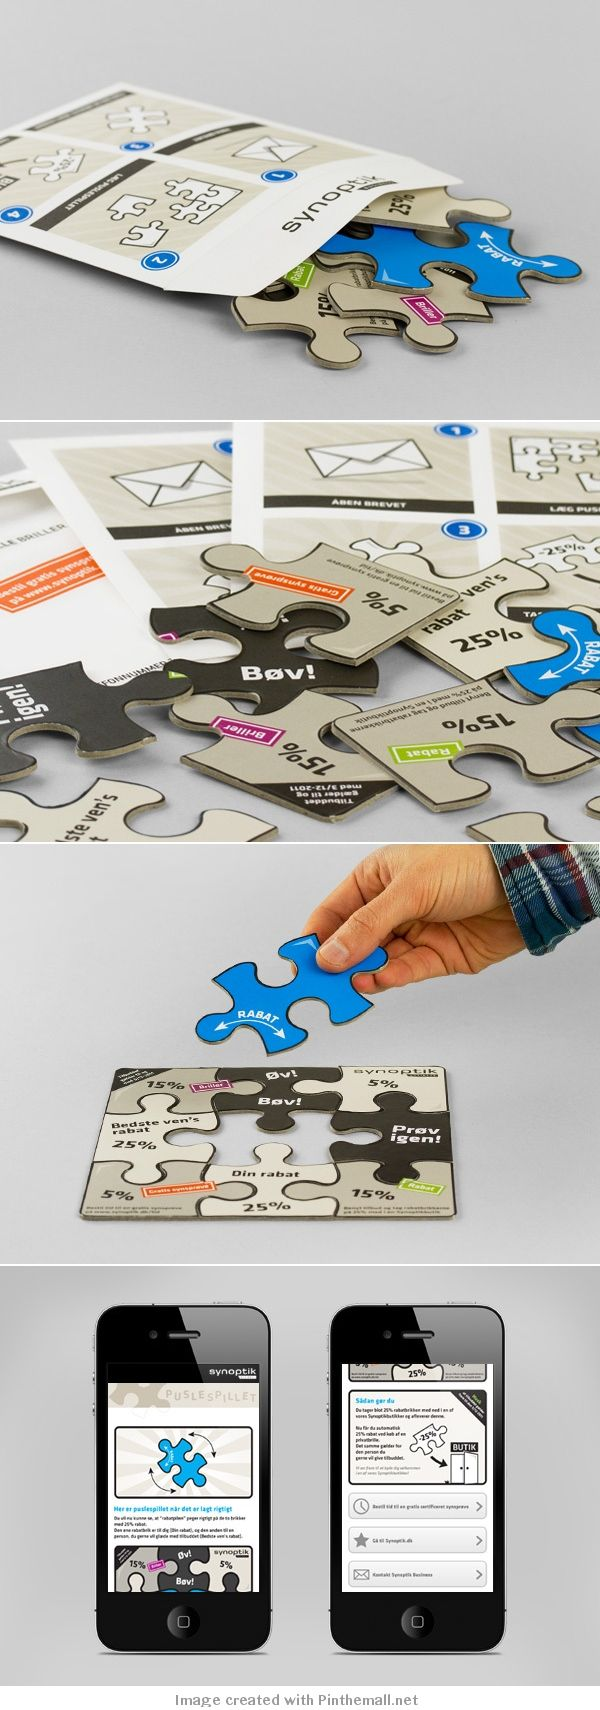 Direct mail, this comes as a jigsaw so the receiver can create the image themselves - 'make your own adventure'